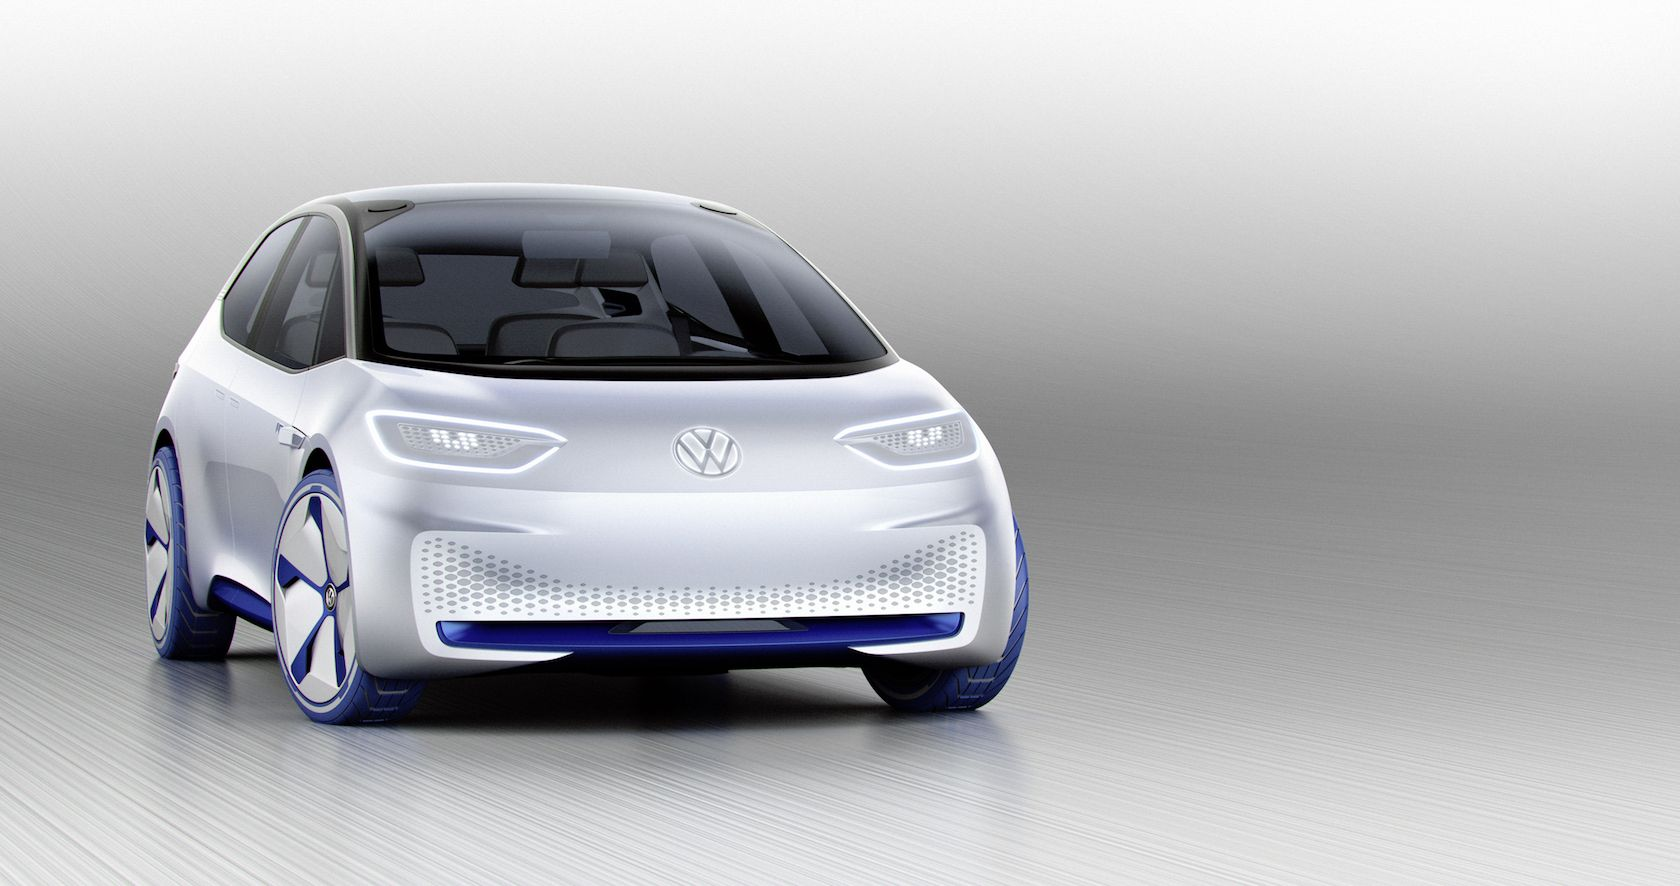 This Volkswagen I D Is The Electric Golf For 2020 Concept Cars Electric Cars Electric Car Concept